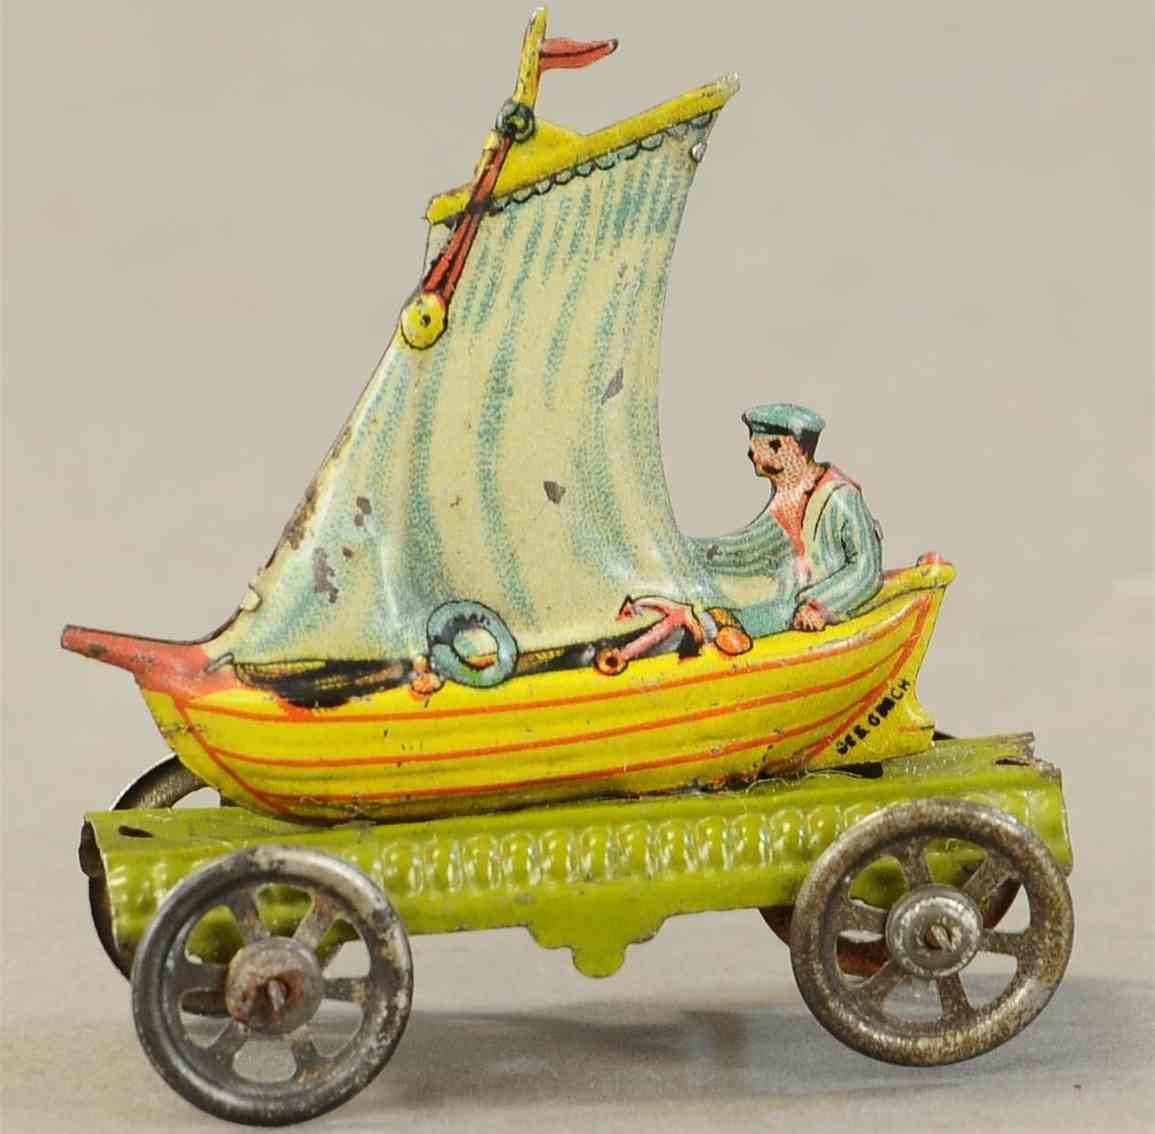 meier penny toy man in sailboat on green platform with spoked wheels